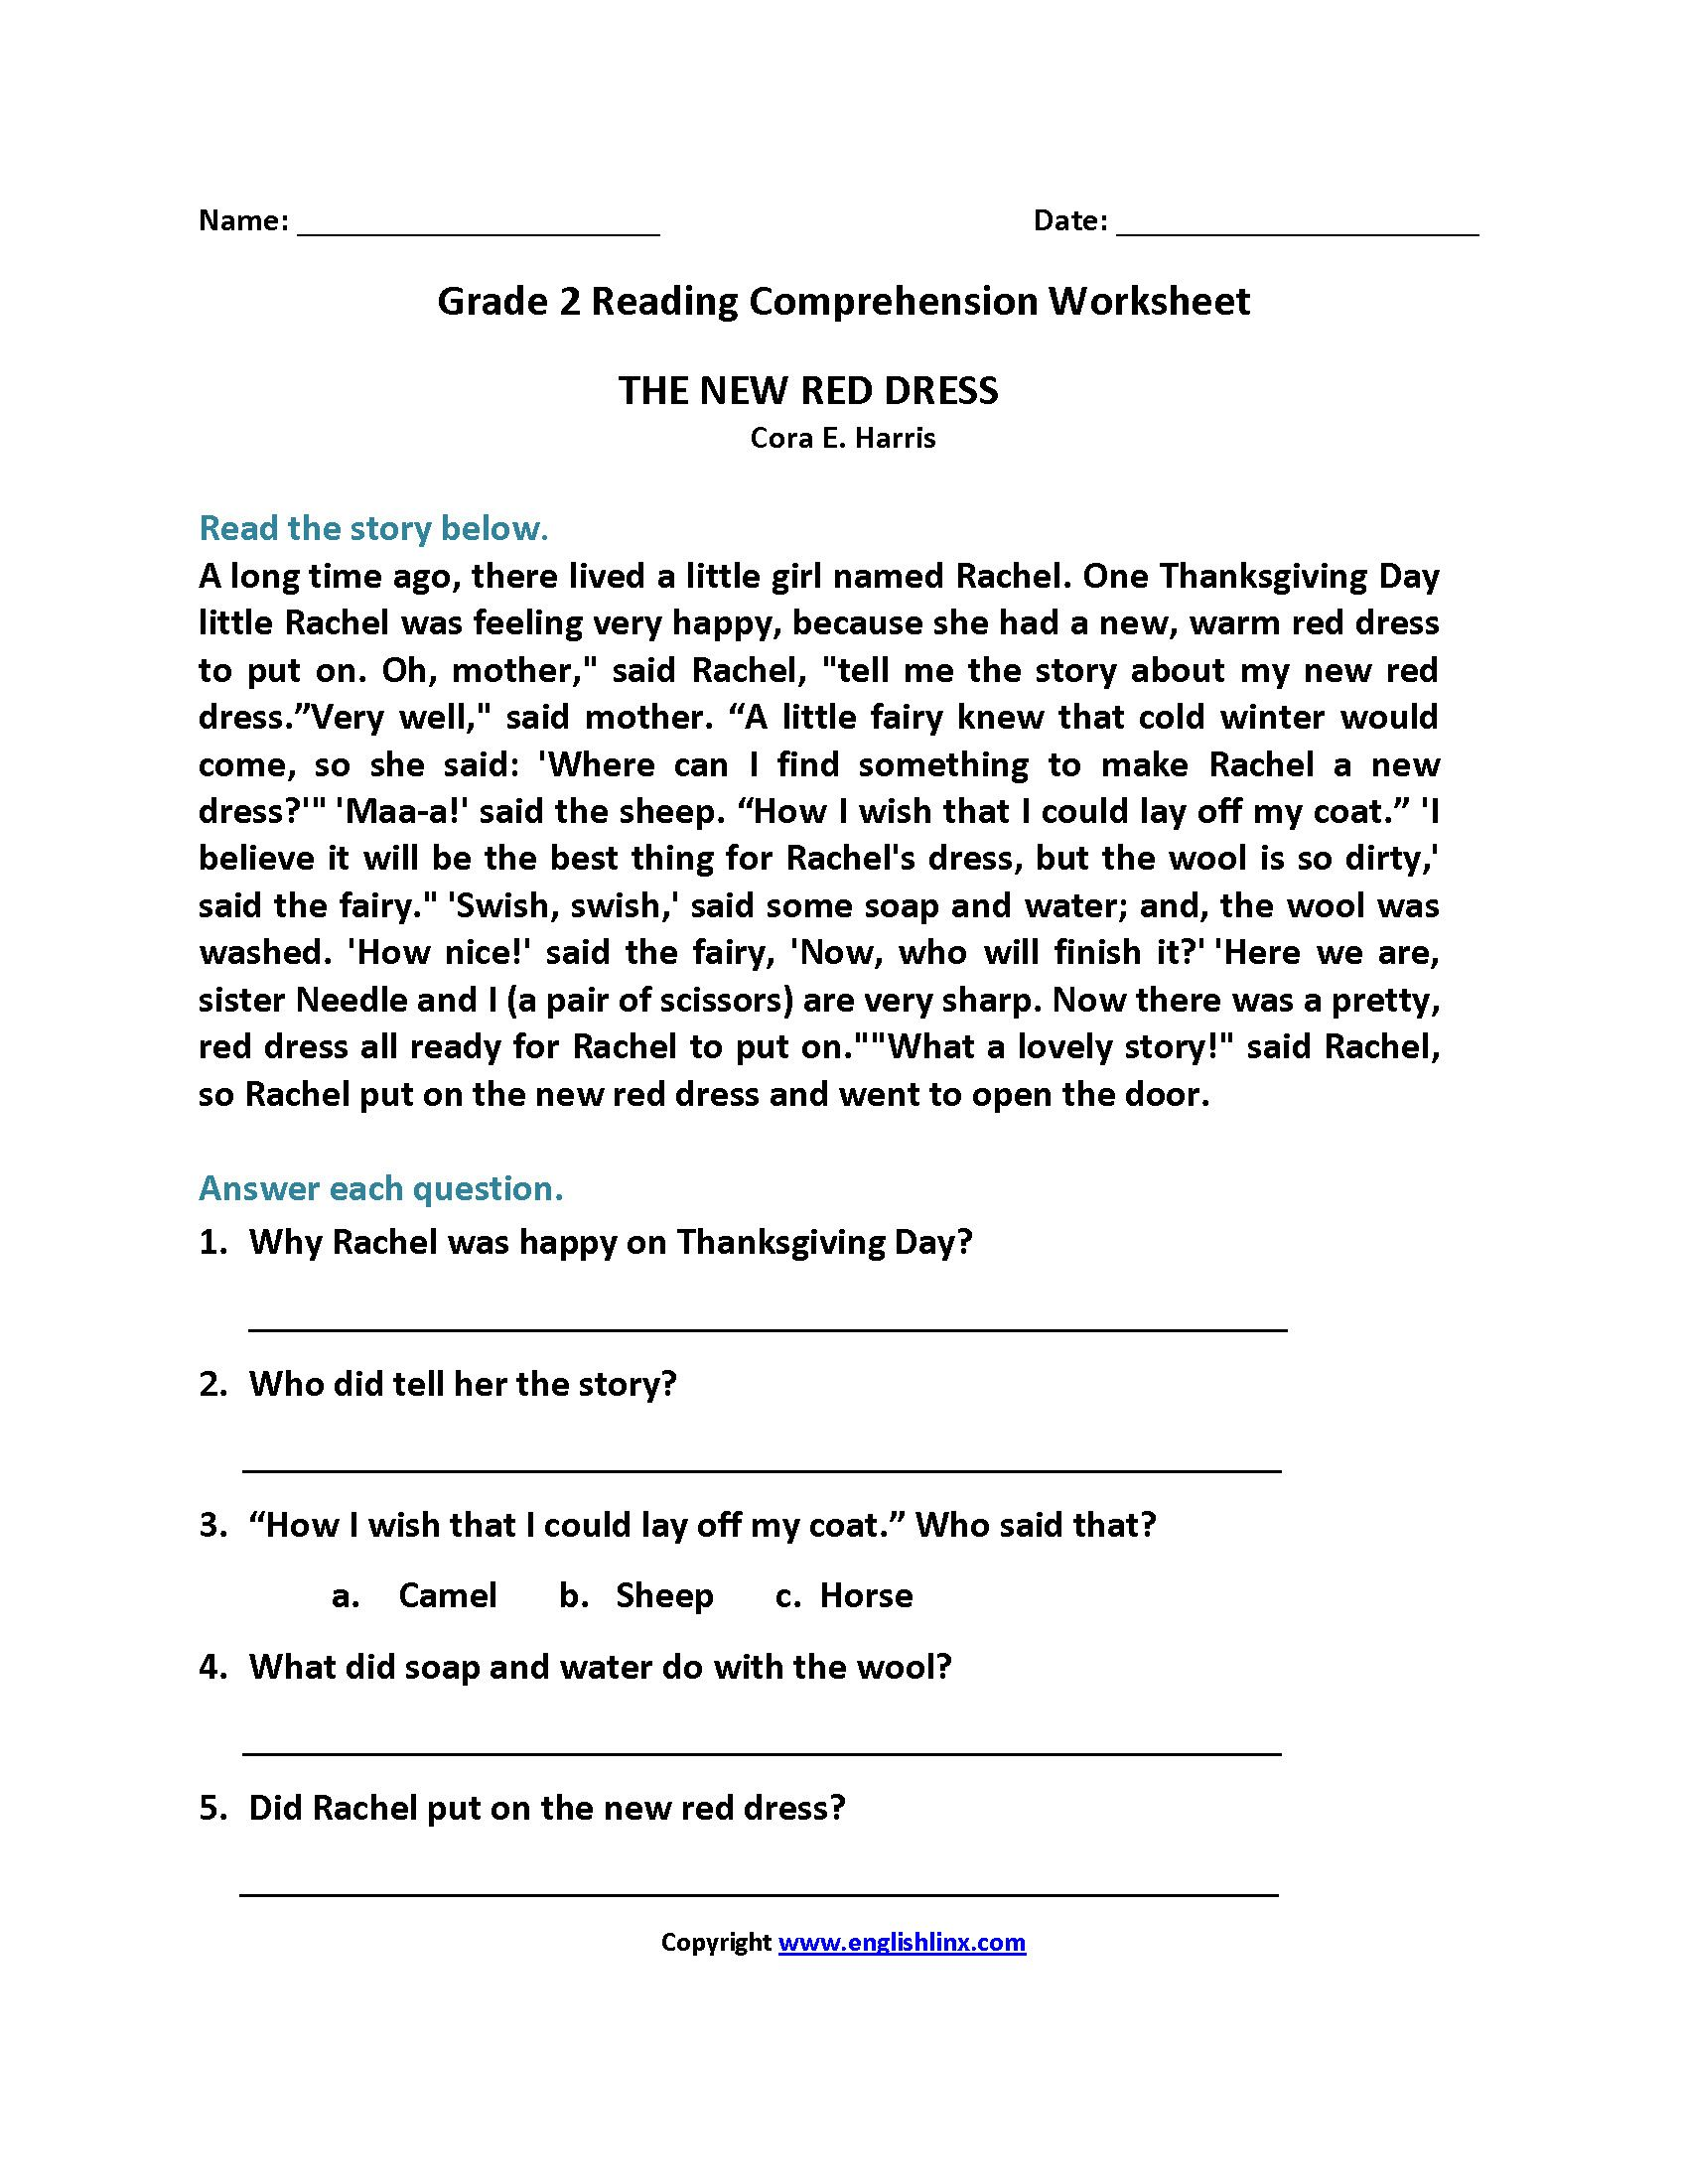 Grade 2 Reading Comprehension Worksheets In